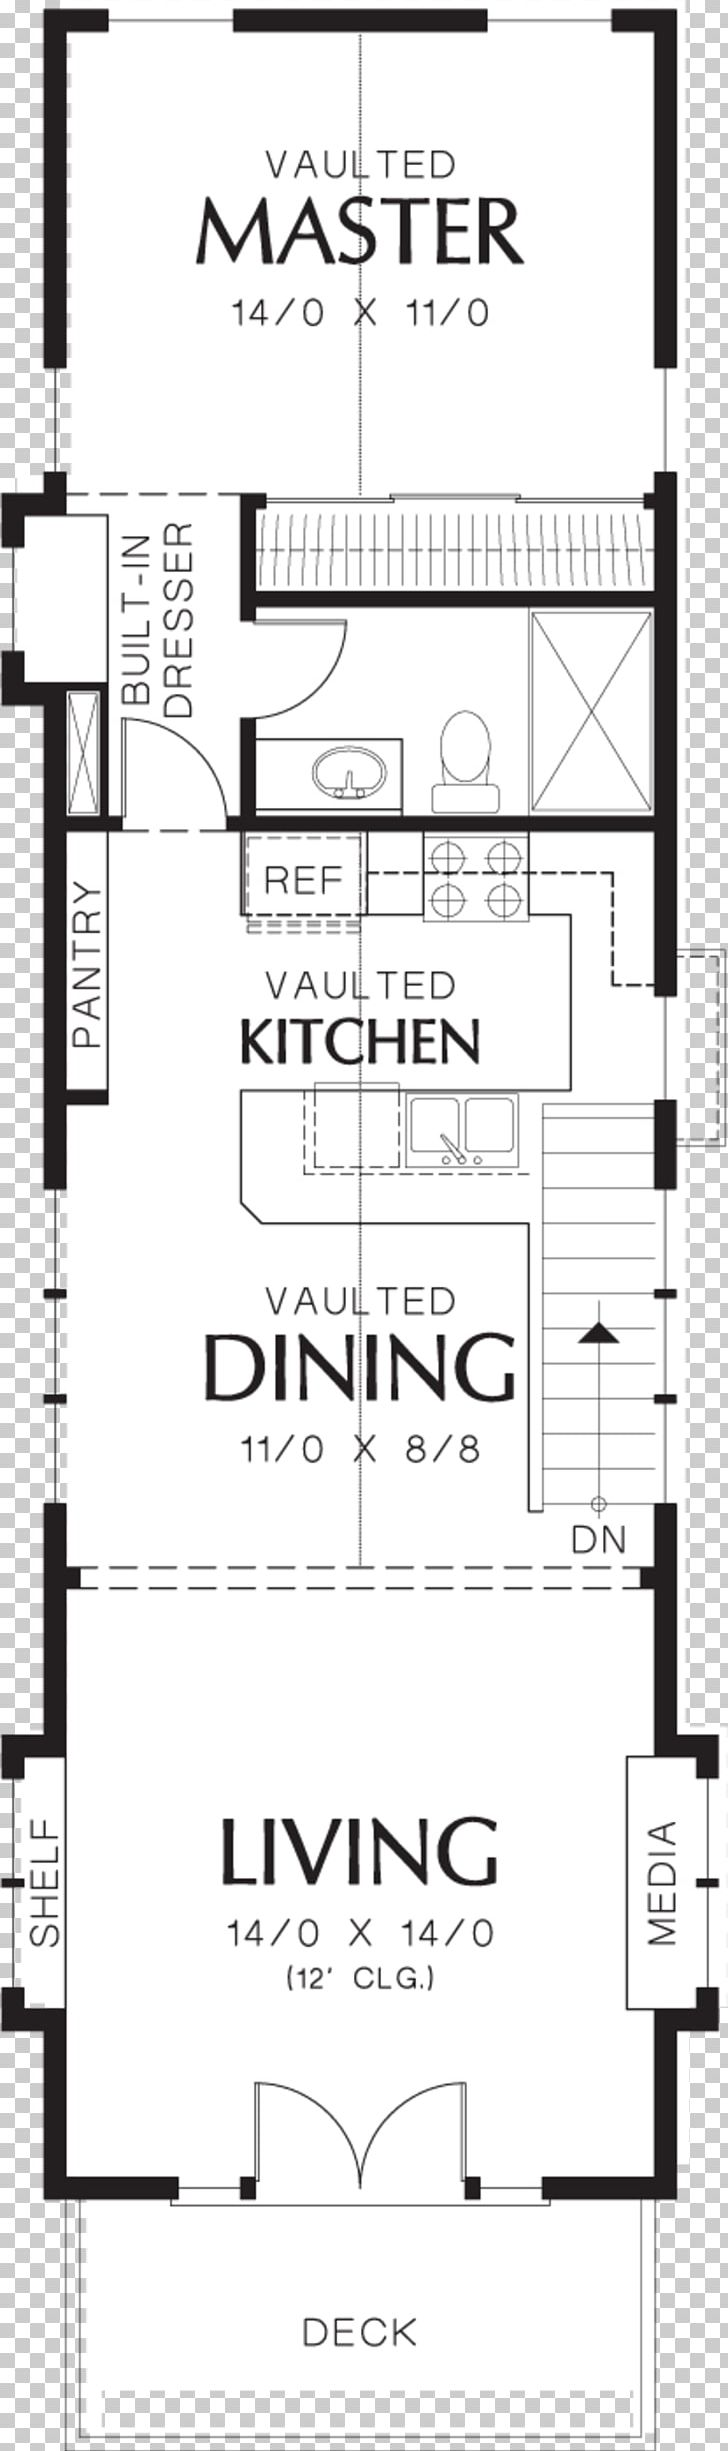 House Plan Floor Plan Shotgun House PNG, Clipart, Angle ... on